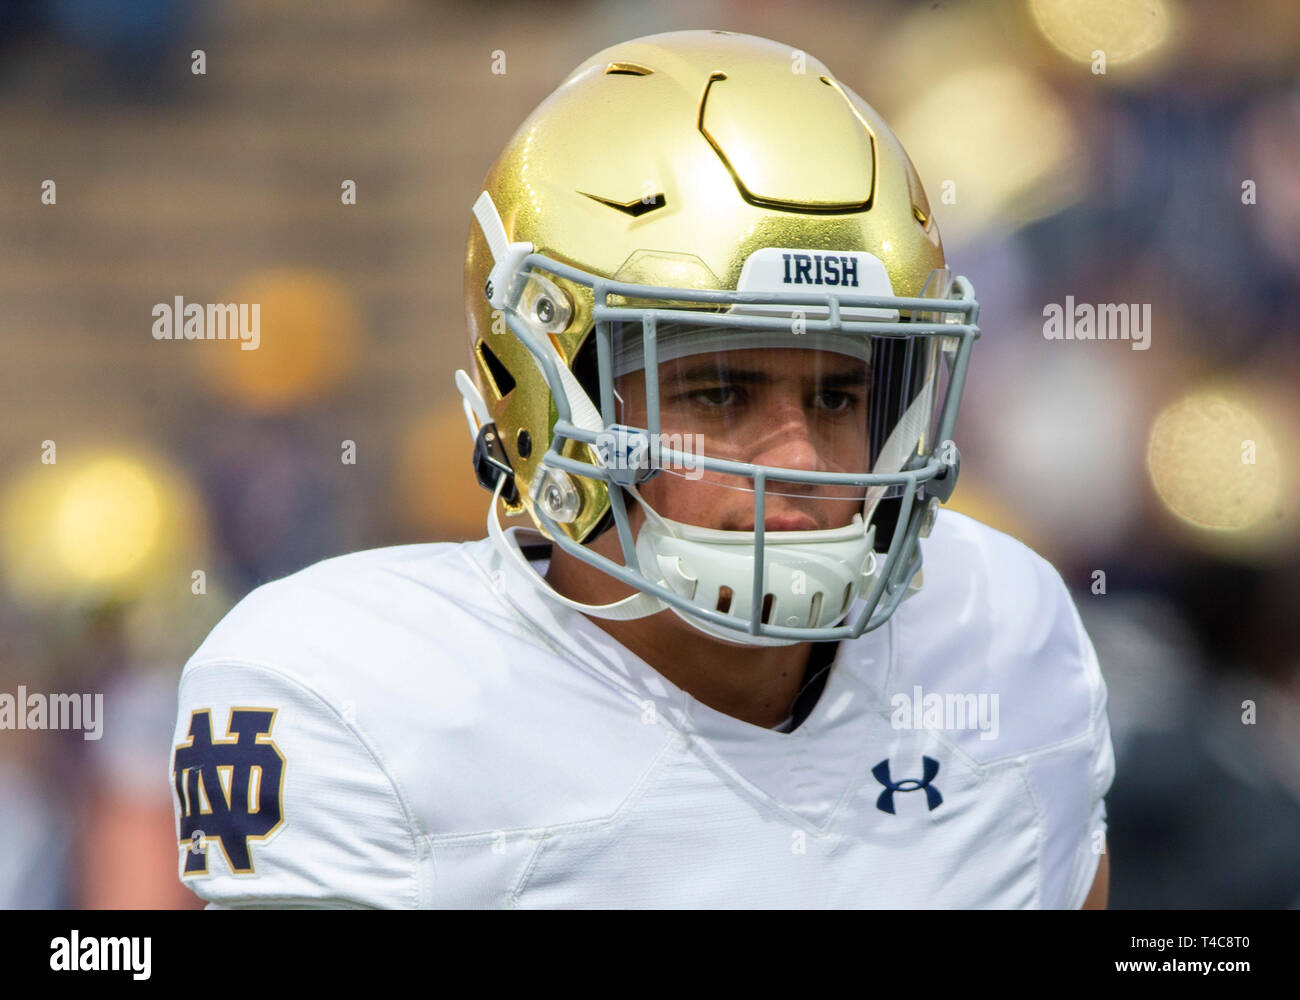 April 13, 2019: Notre Dame safety Alohi Gilman (11) during the Notre Dame 90th Annual Blue-Gold Spring football game at Notre Dame Stadium in South Bend, Indiana. With a custom scoring format, the defense earned a 58-45 victory over the offense. John Mersits/CSM - Stock Image